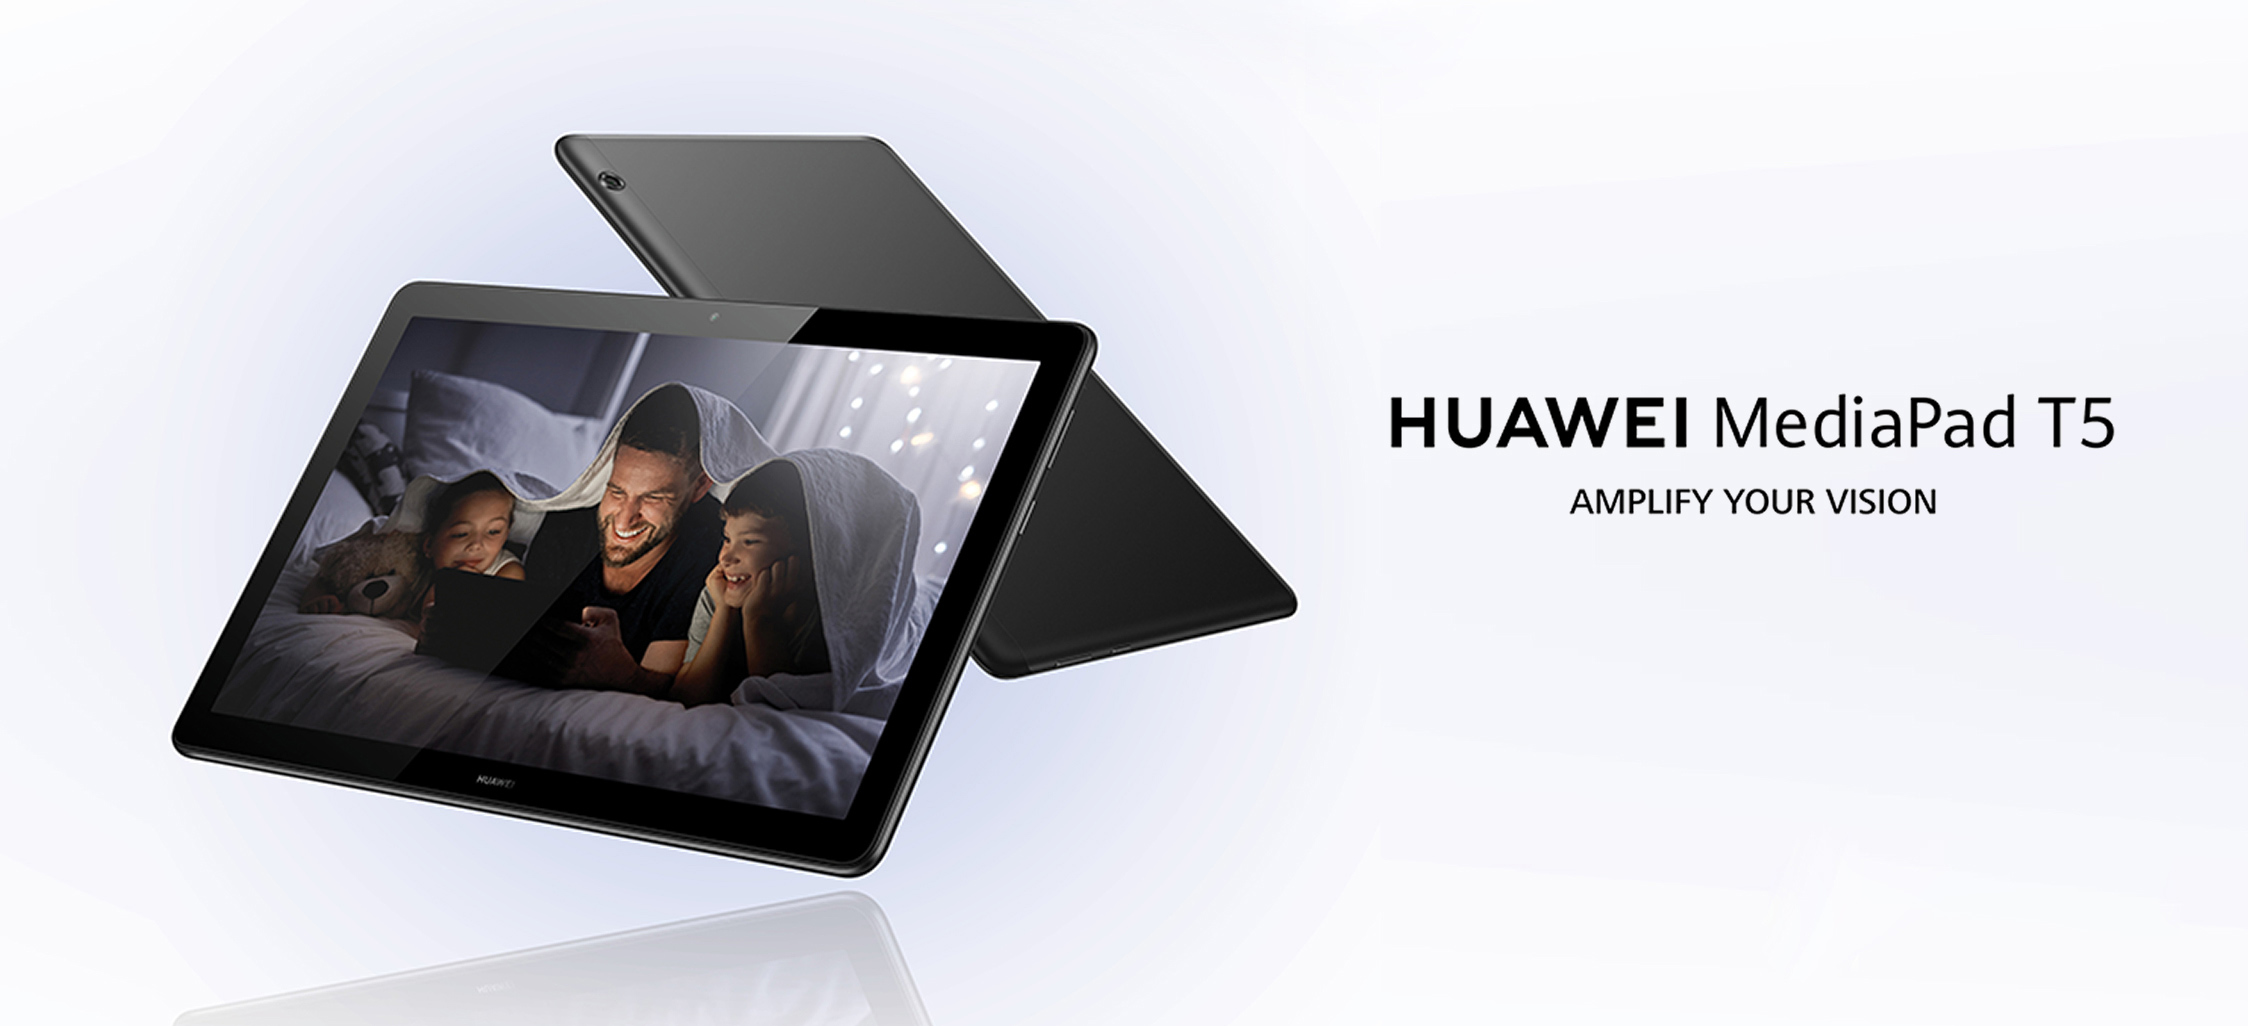 HUAWEI MediaPad T5 t, full HD resolution, 10 inch tablet